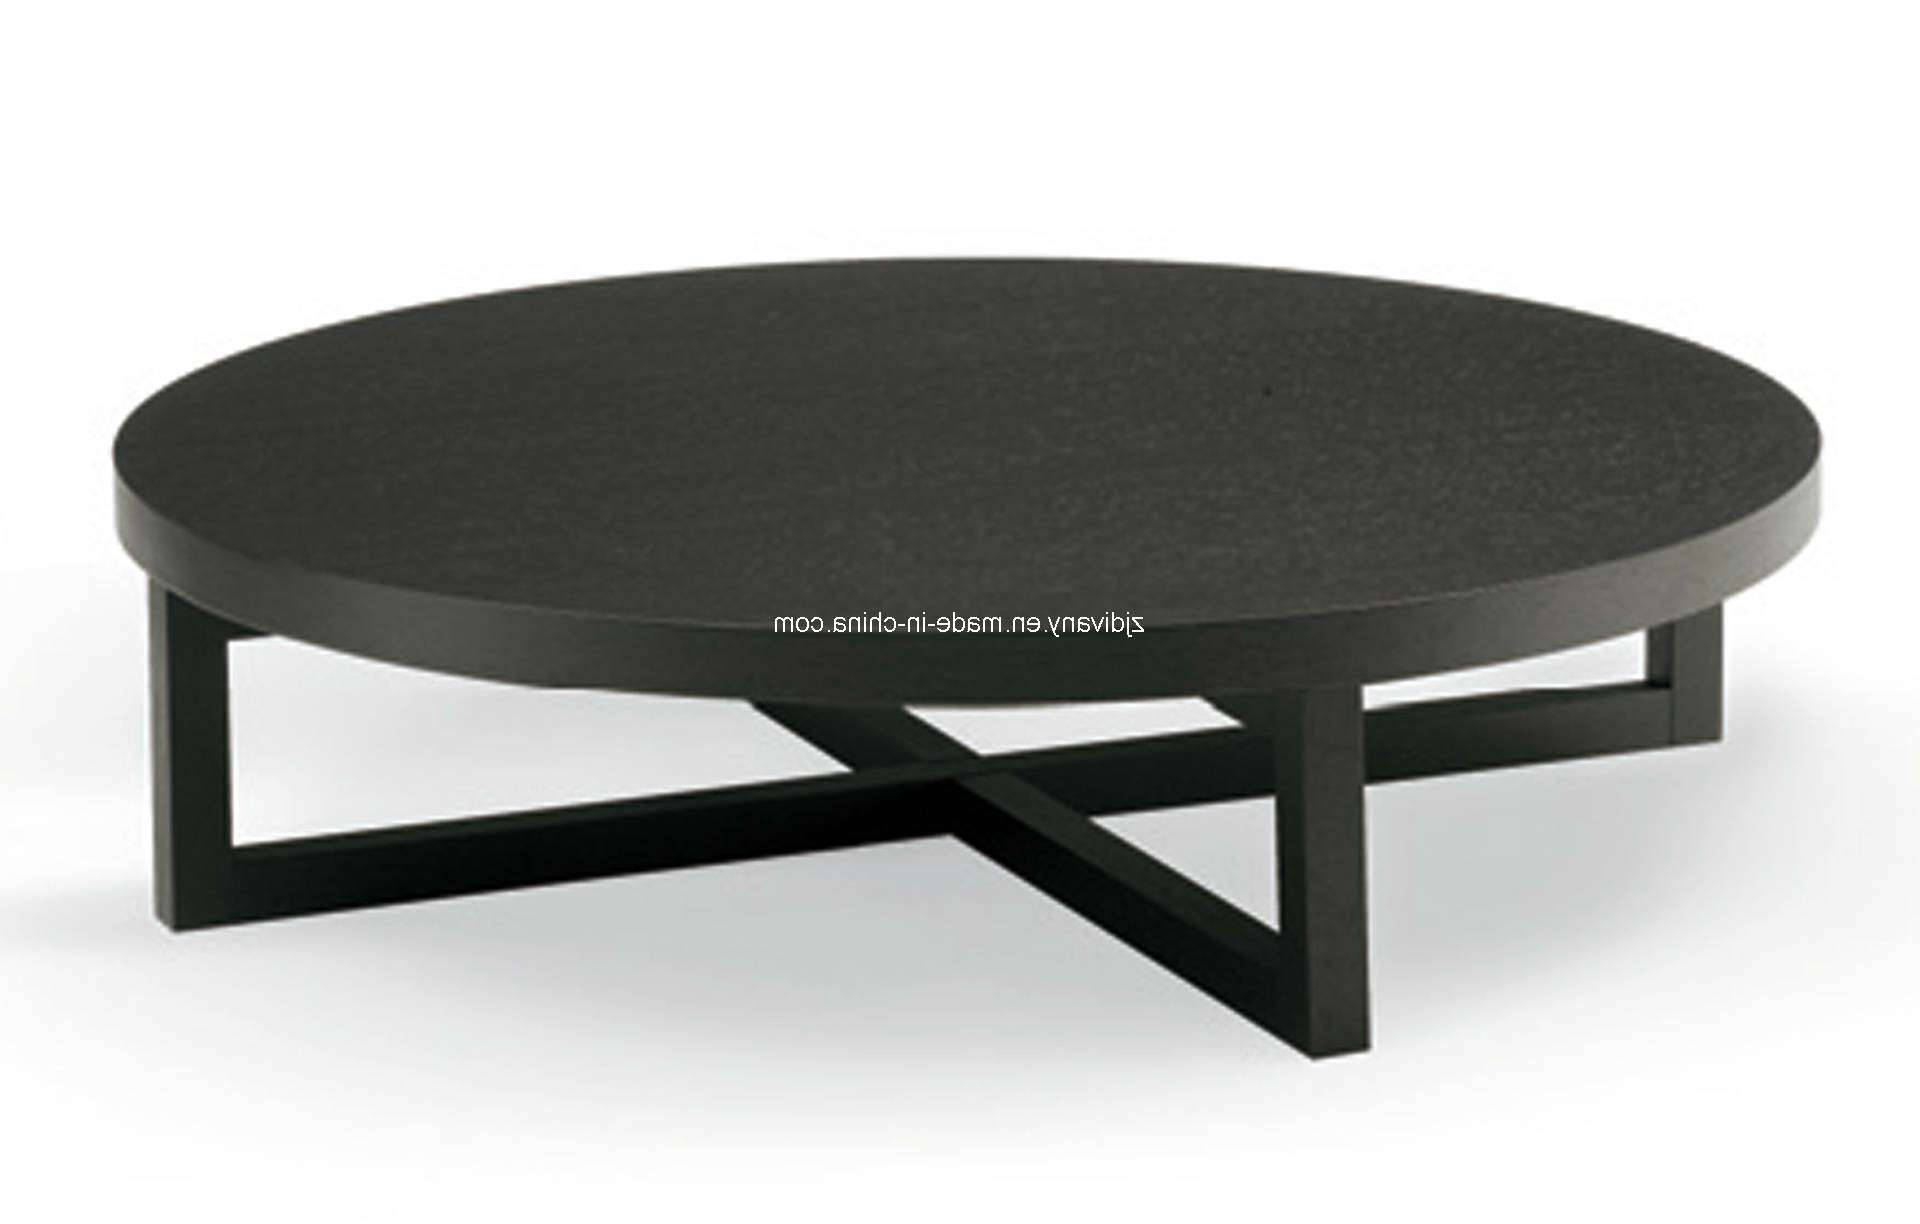 Newest Large Low Wood Coffee Tables Intended For Low Wood Coffee Table – Home Design Ideas And Pictures (View 13 of 20)